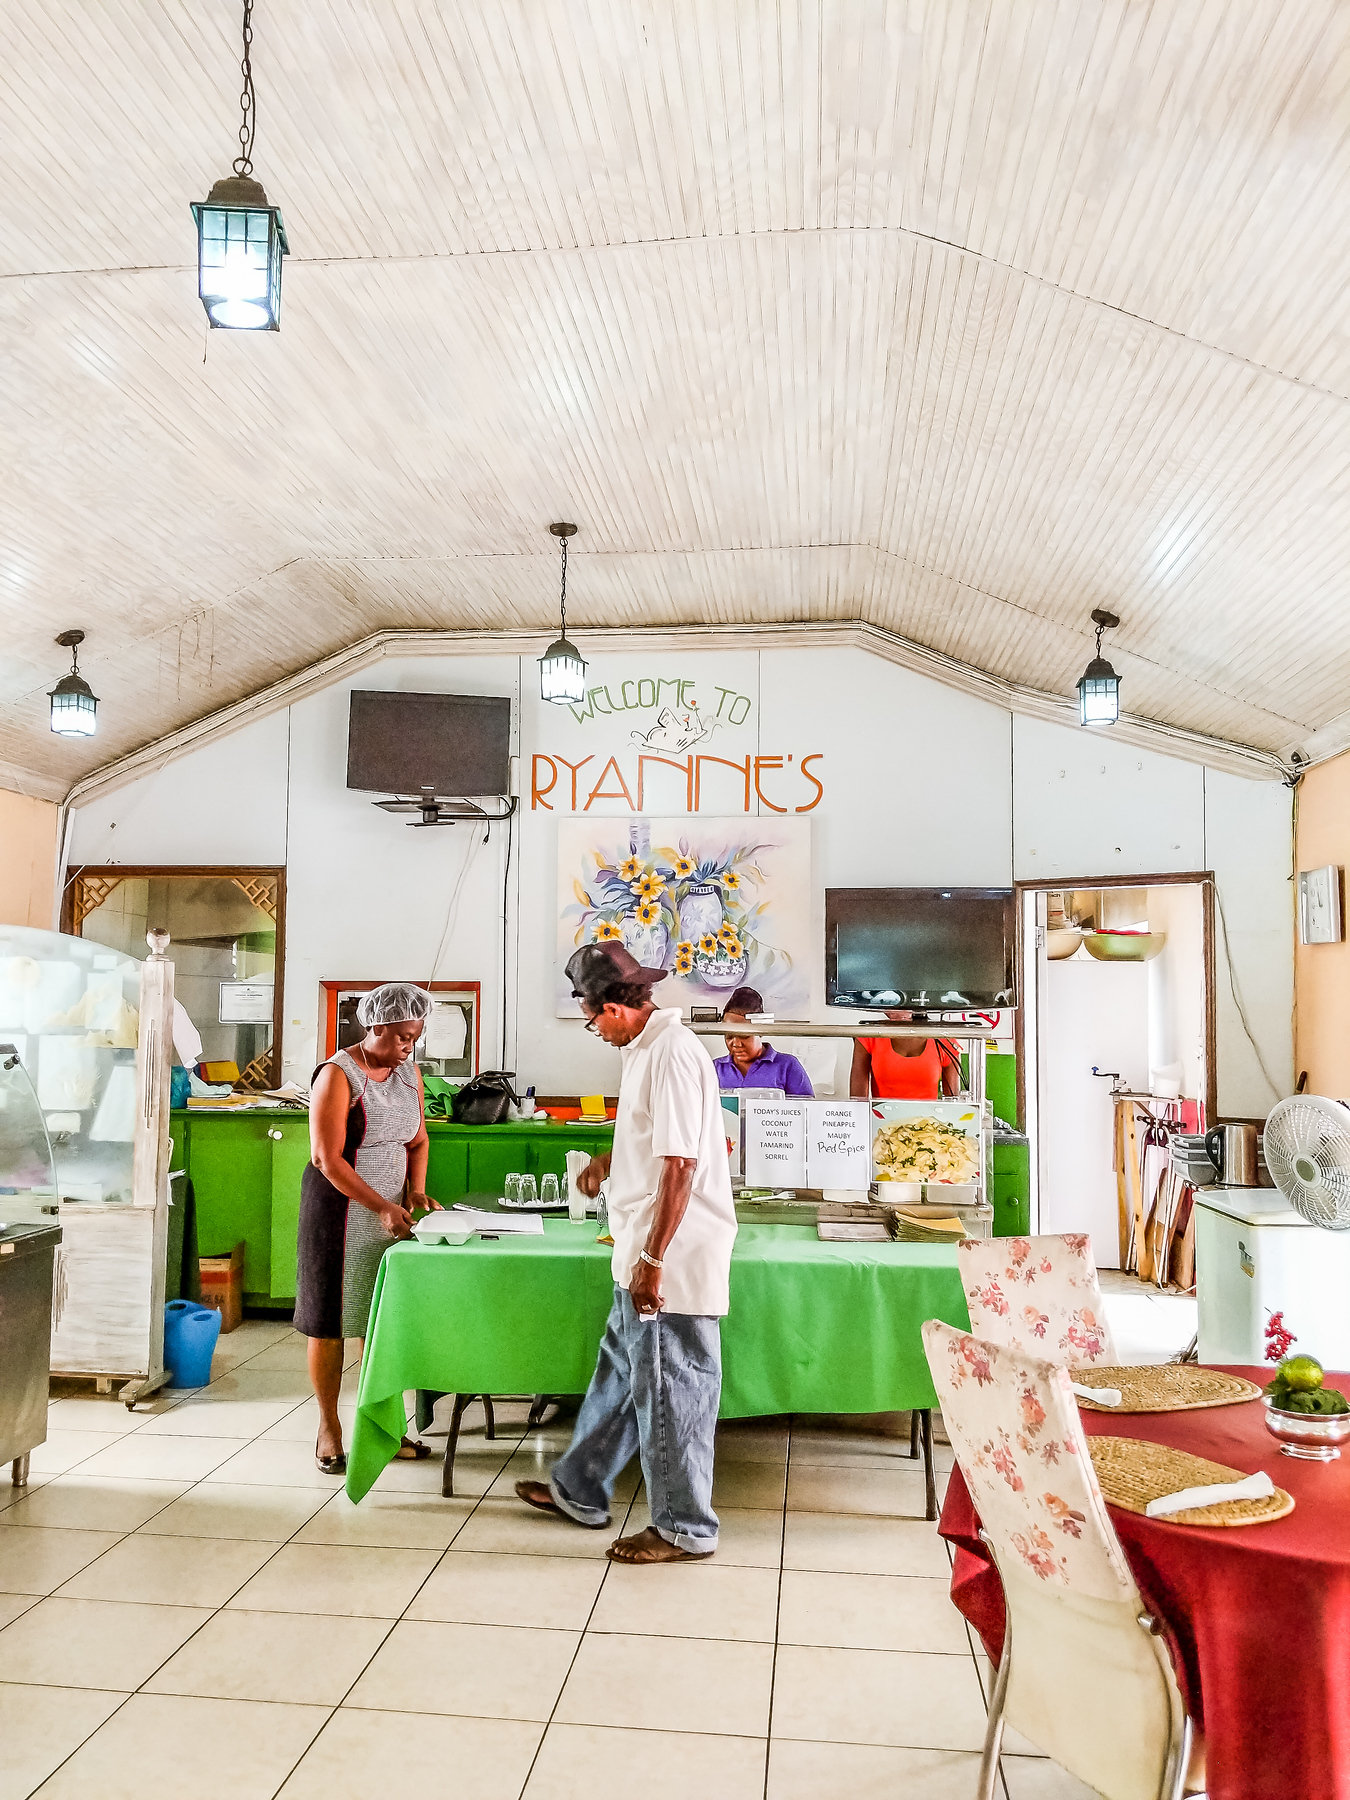 The best Barbados restaurants according to locals include Ryanne's which is packed at lunch for its traditional Bajan buffet.